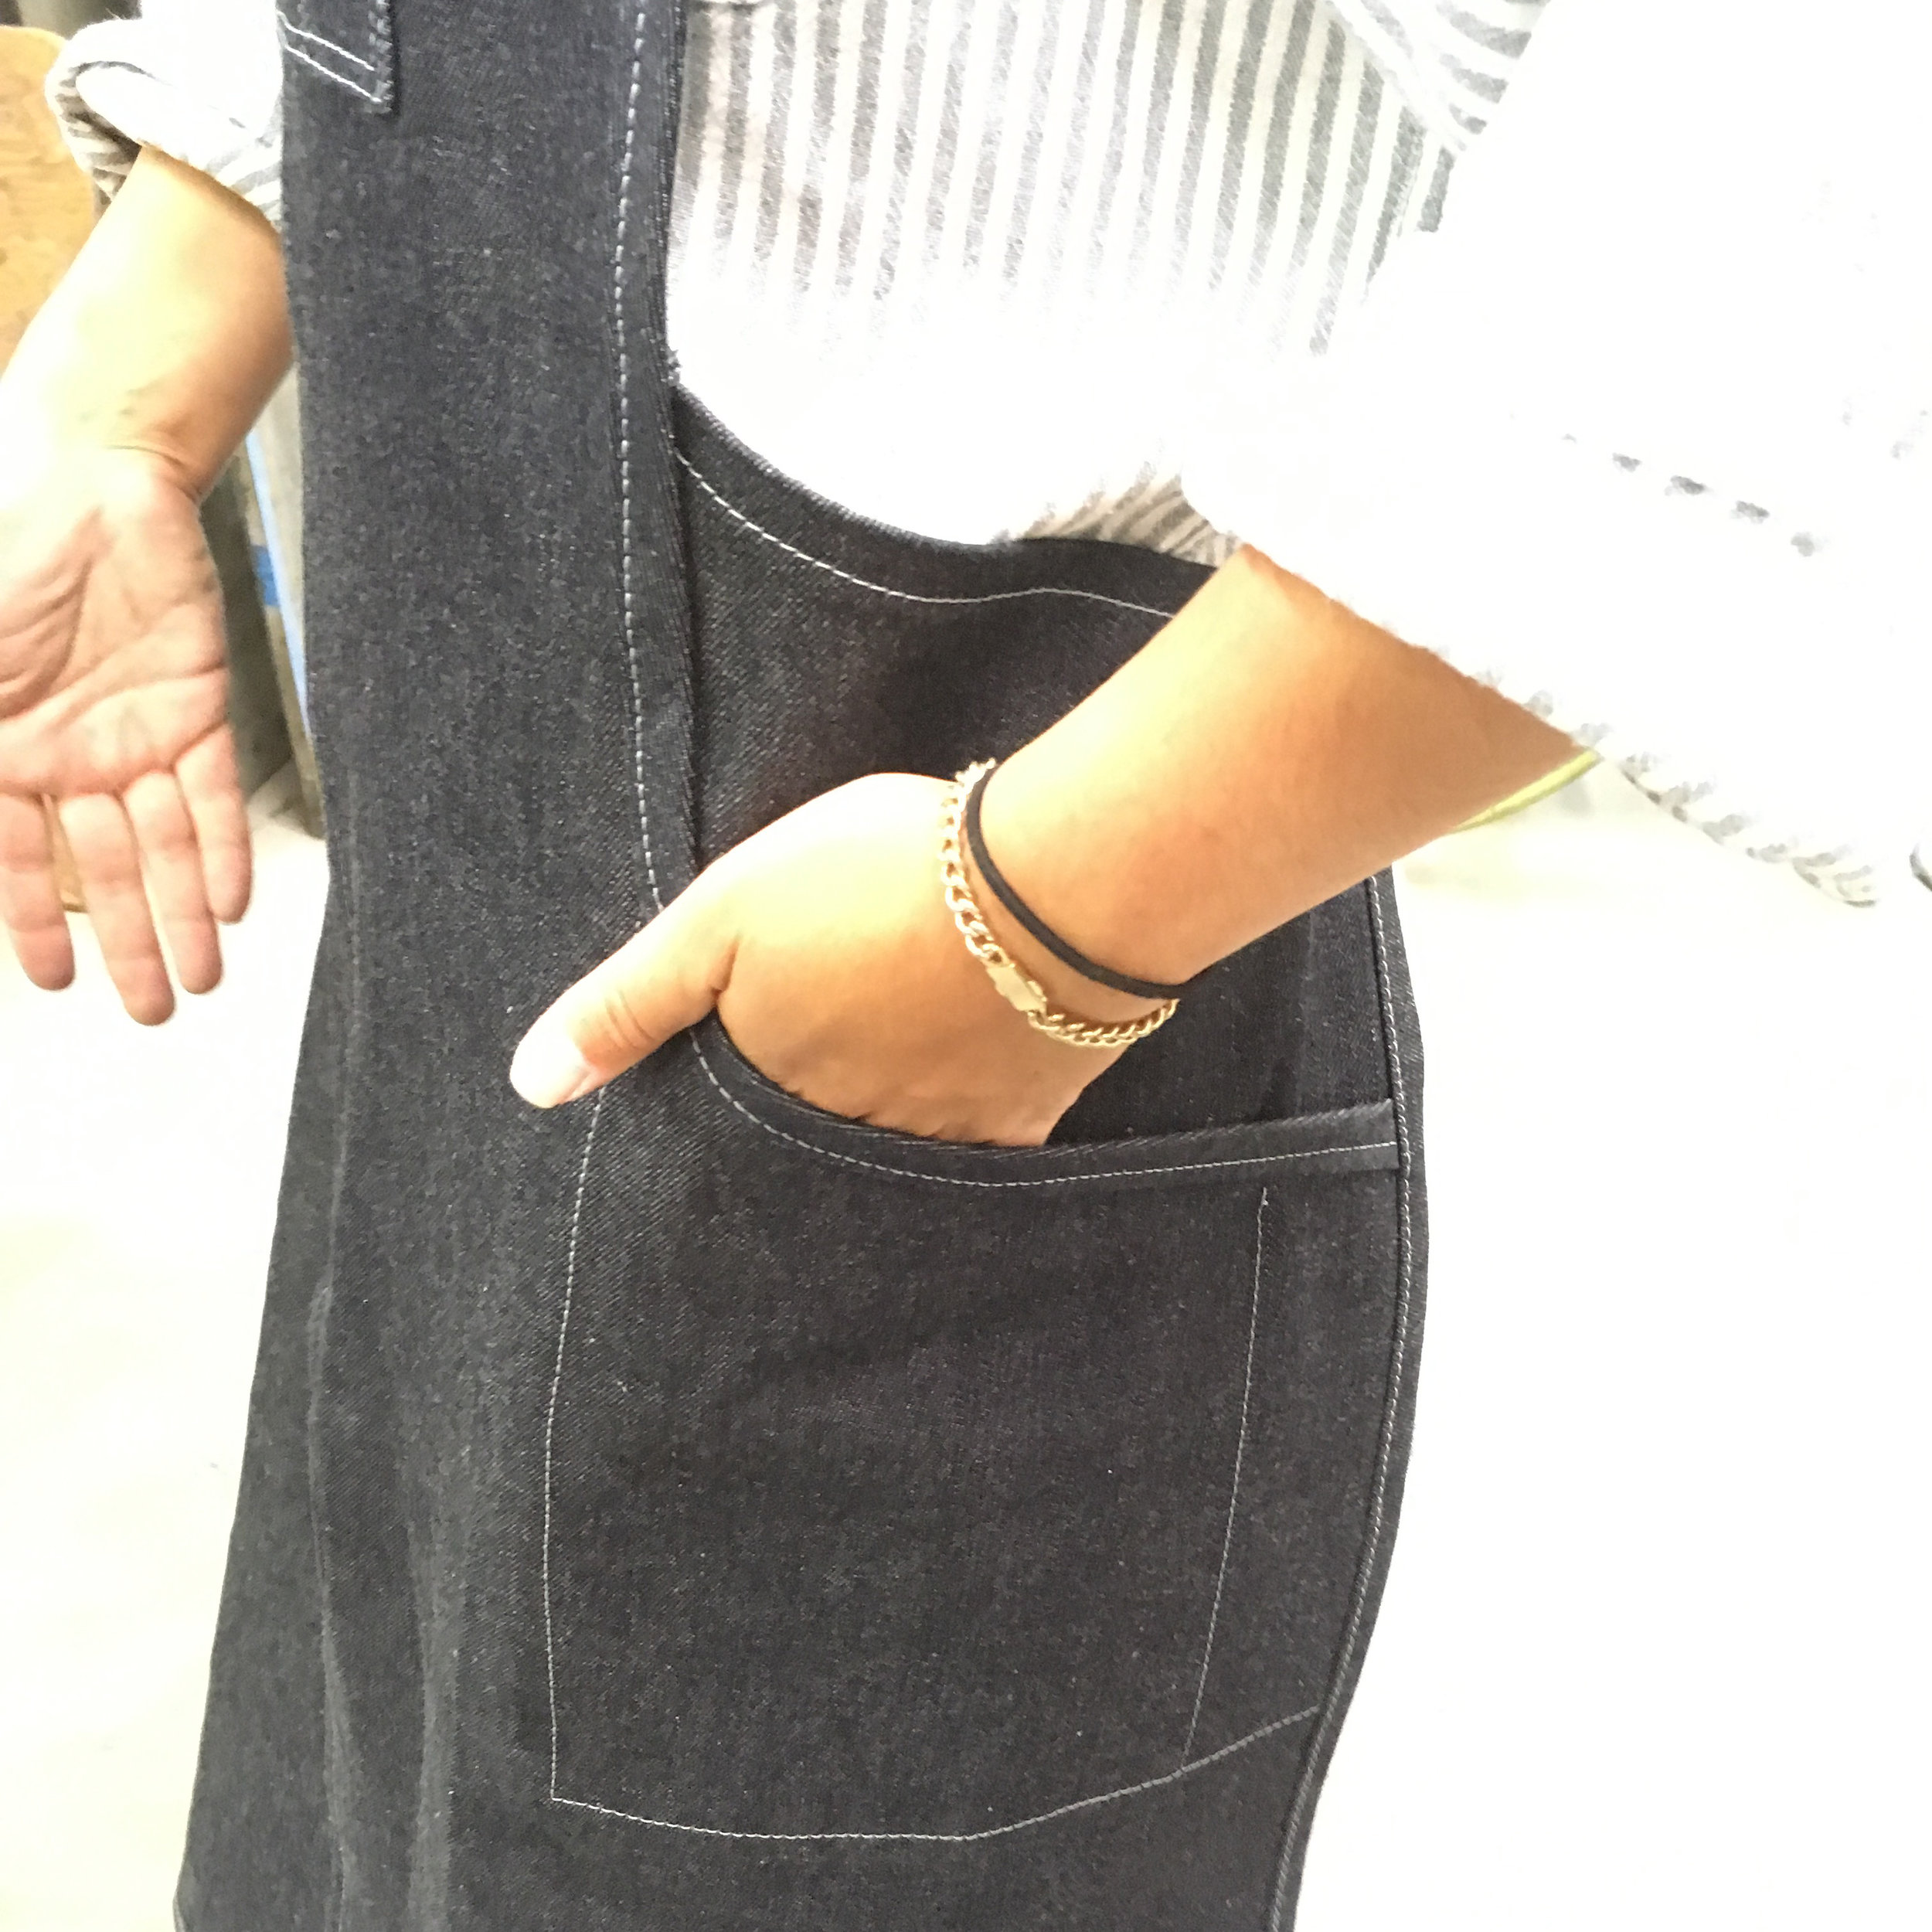 Details - American selvedge cone denim from the (now closed) White Oak mill. Split leg so you can jump on a bike for a test ride. Soft lined 'phone' pocket, button hole headphone access, big side pockets, stainless hardware and broad shoulder straps for